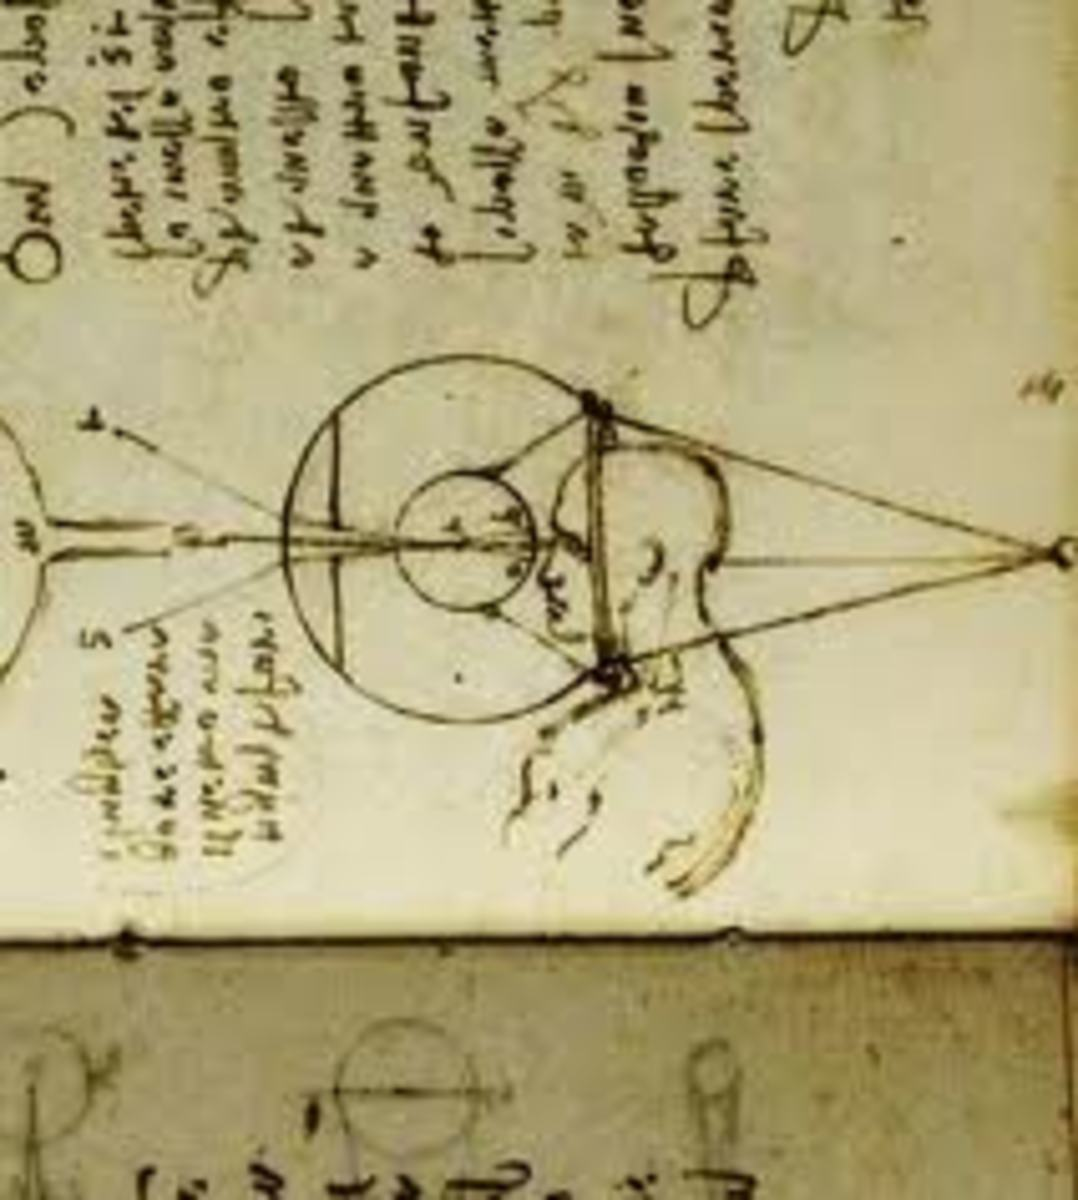 Leonardo's Drawing of the Human Eye